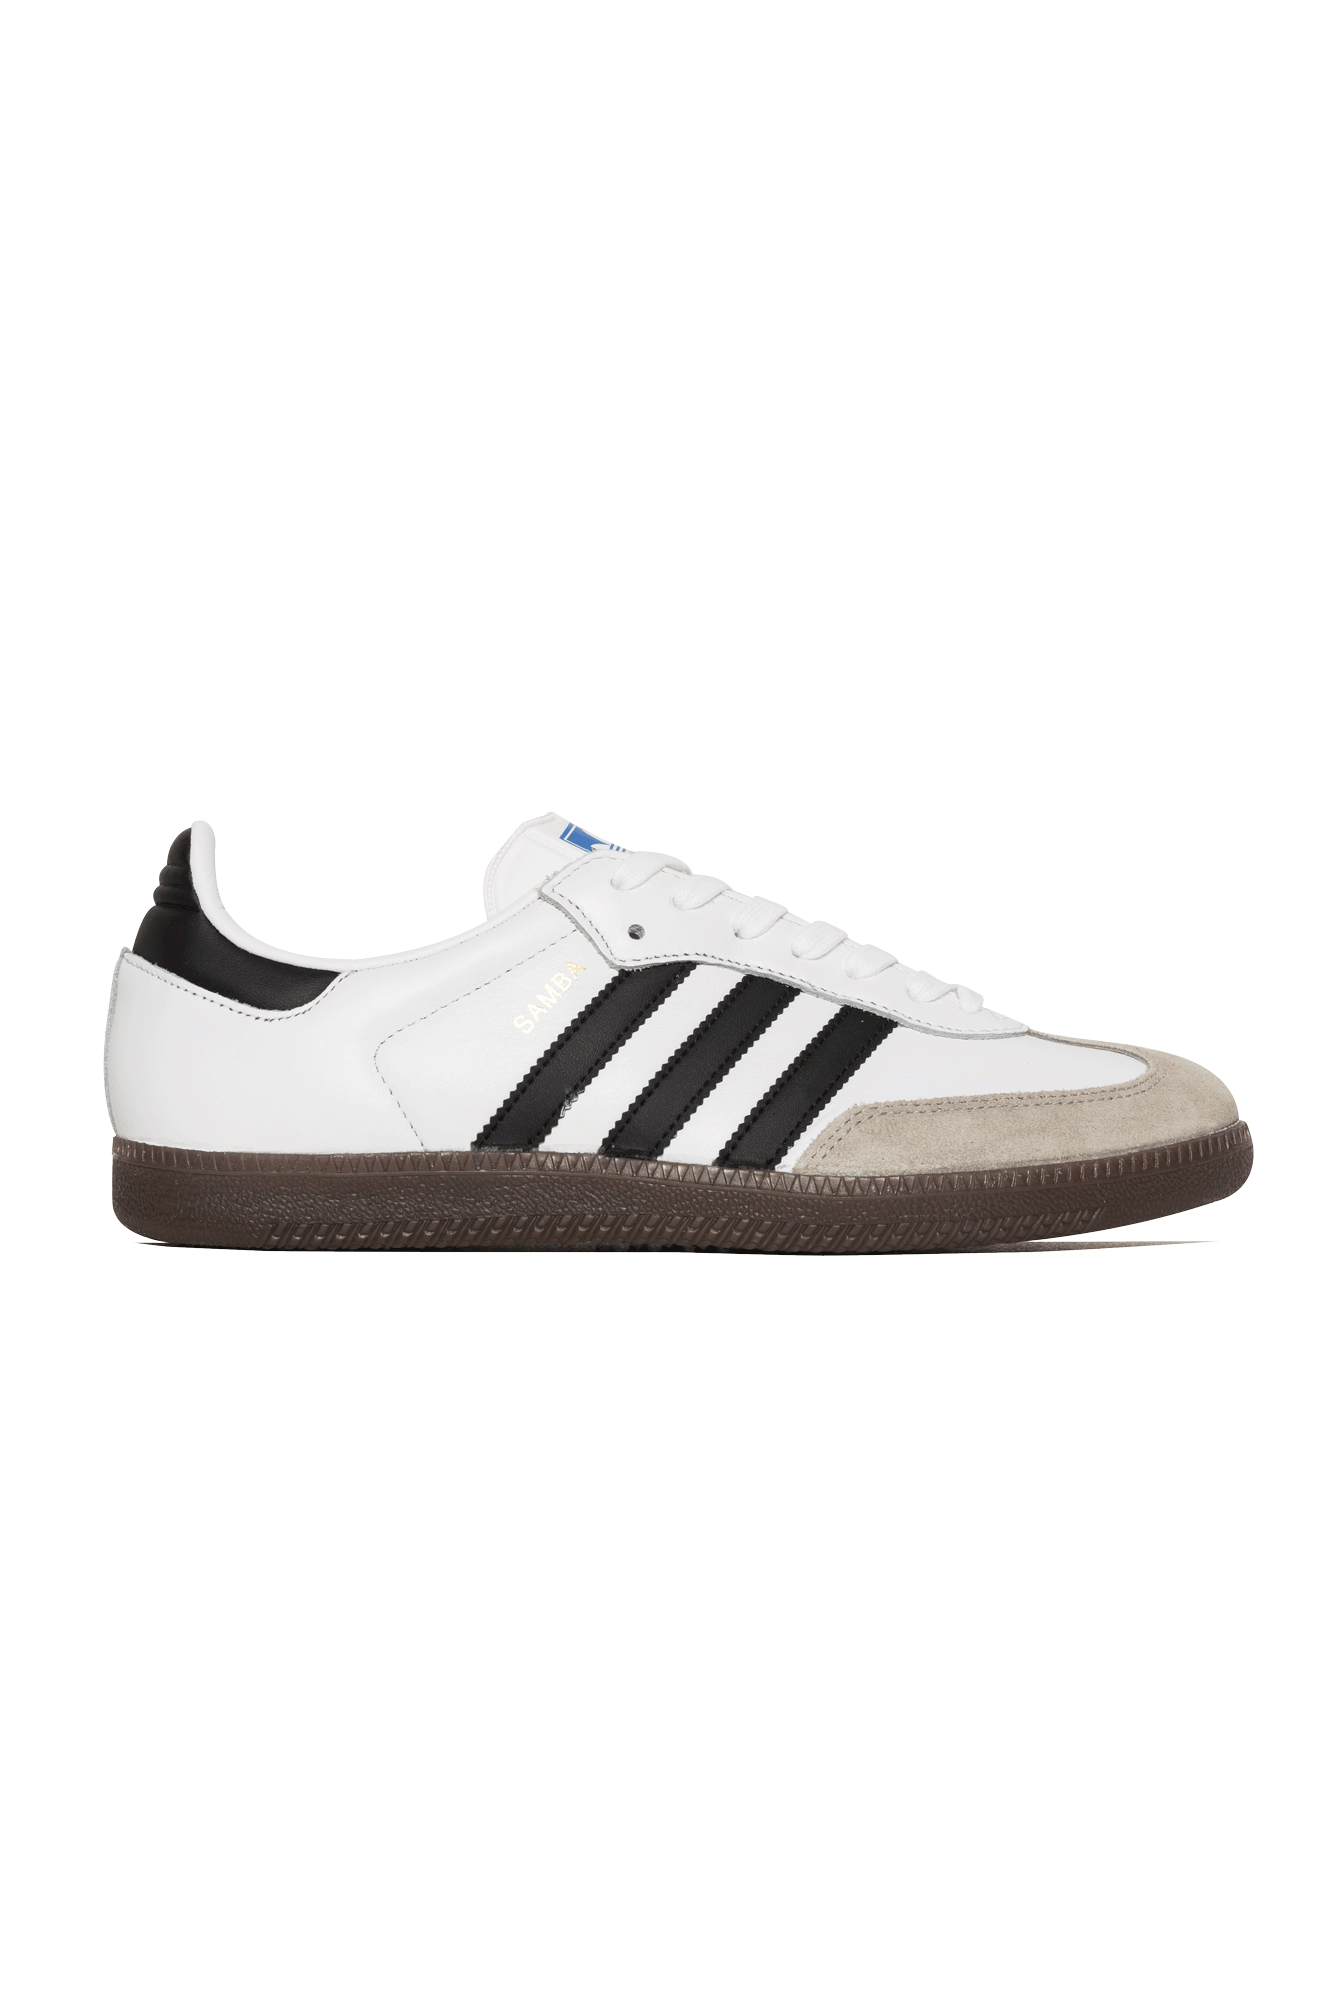 Adidas Originals Sneakers Samba OG White BZ0057#000#C0006#8 - One Block Down